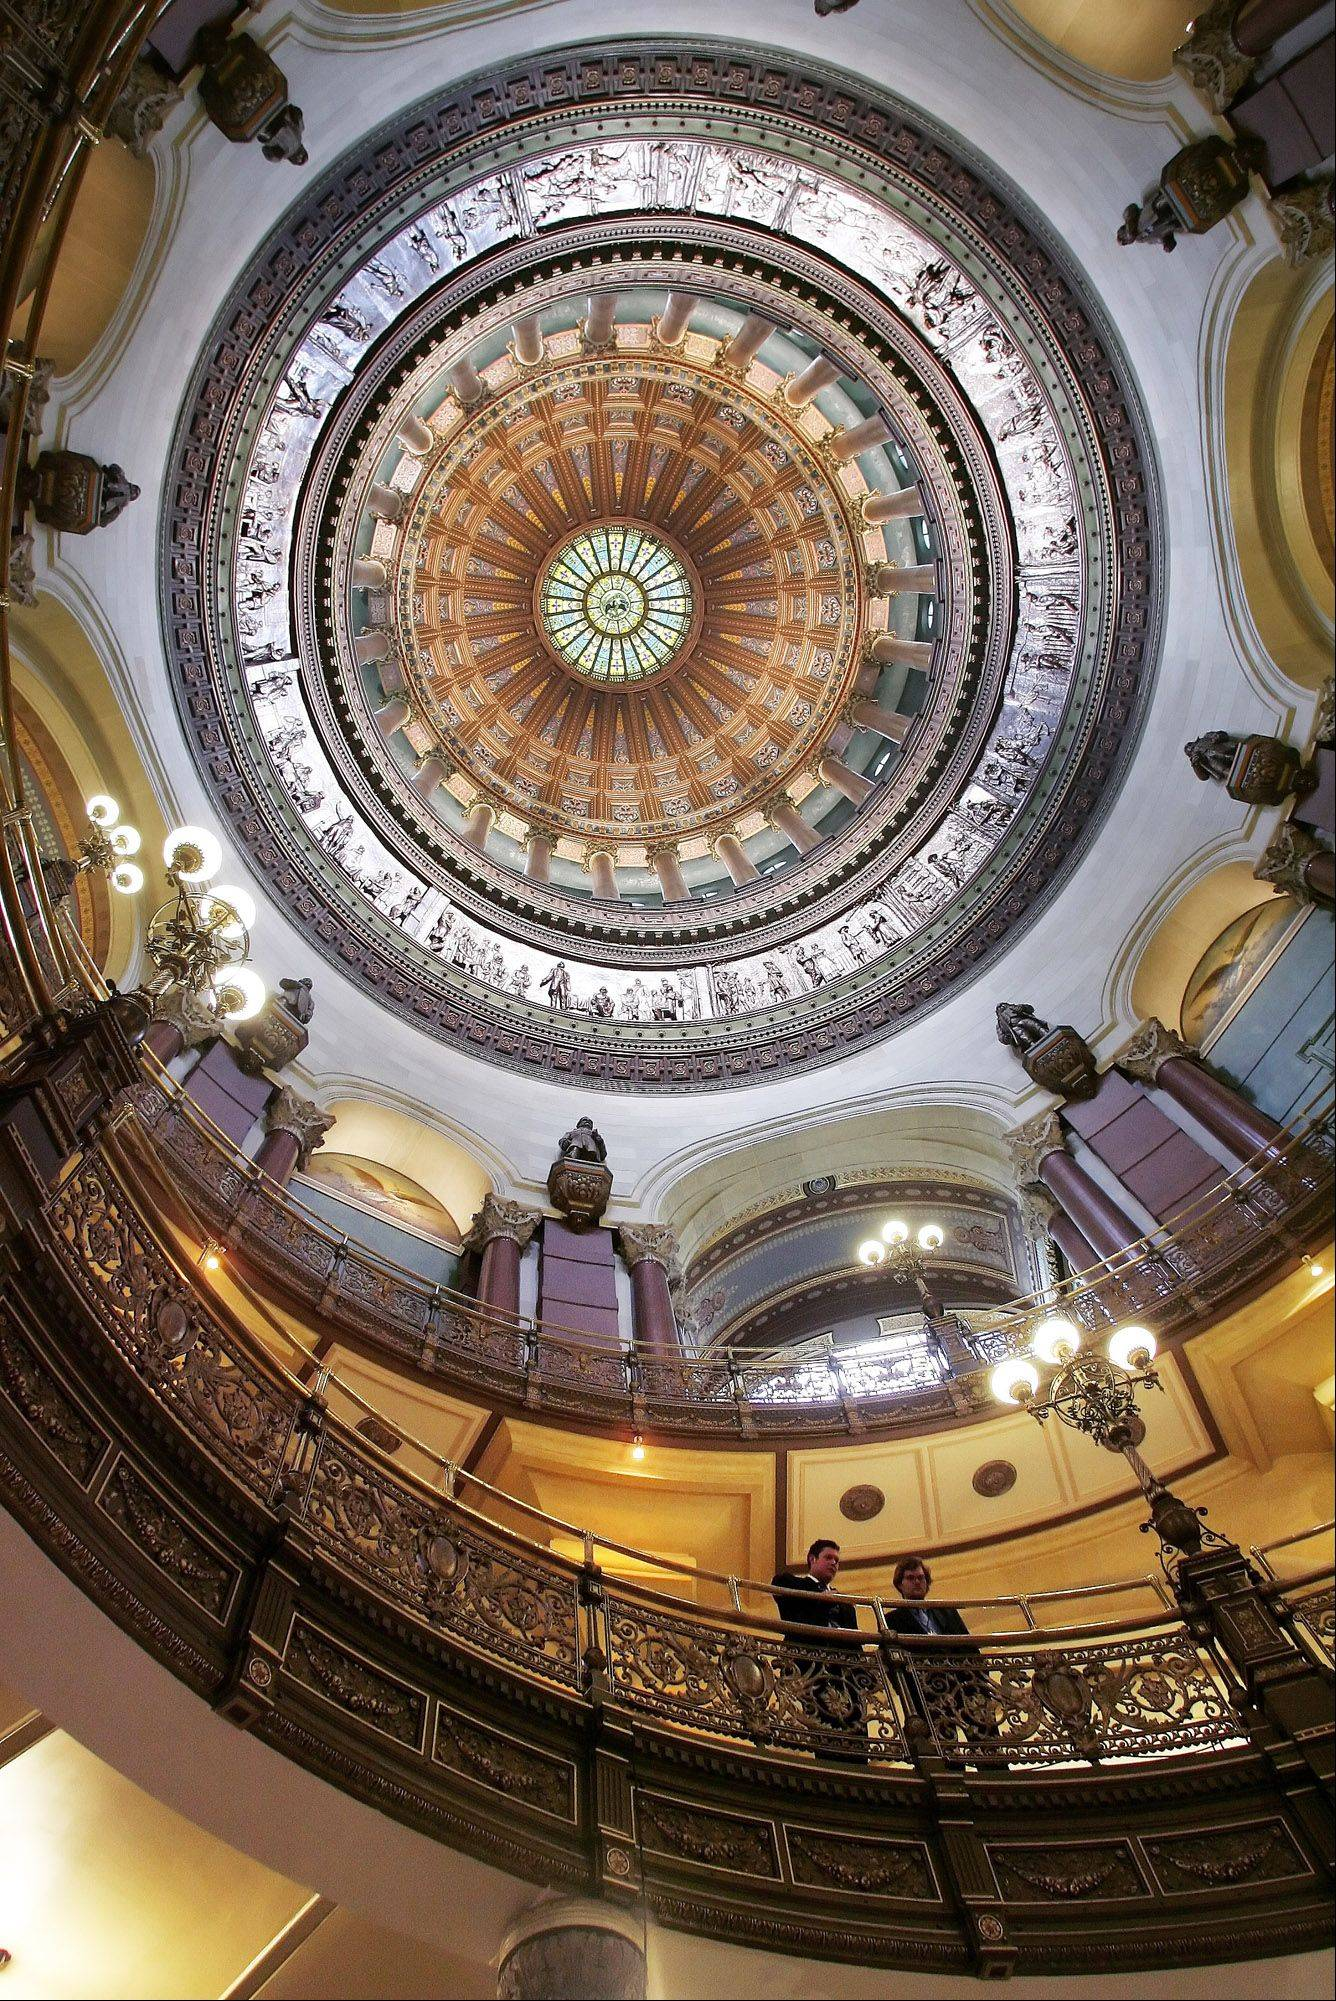 Lawmakers are set to meet under the Illinois Capitol dome Friday to talk about Illinois' pension debt once again, but some believe the issue will linger past November's election.